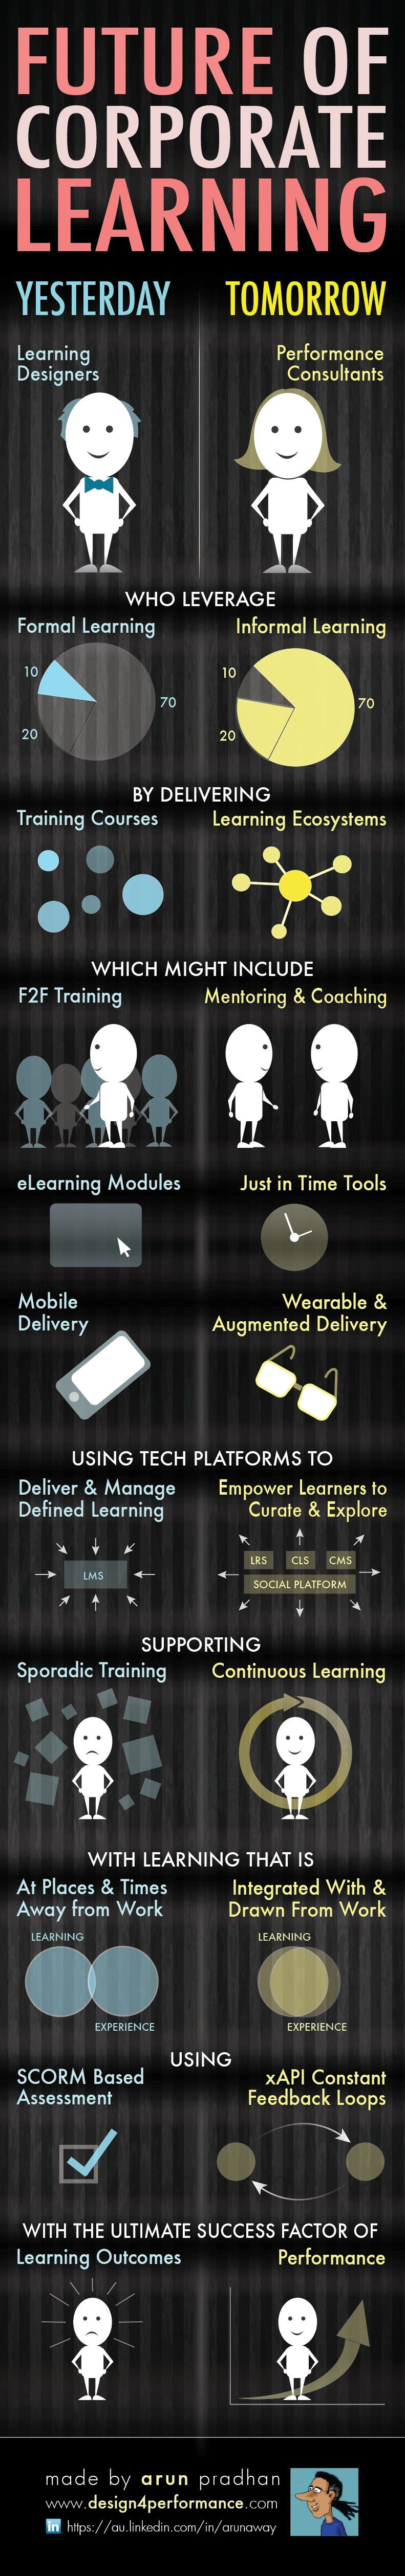 INFOGRAPHIC The Future of Corporate Learning